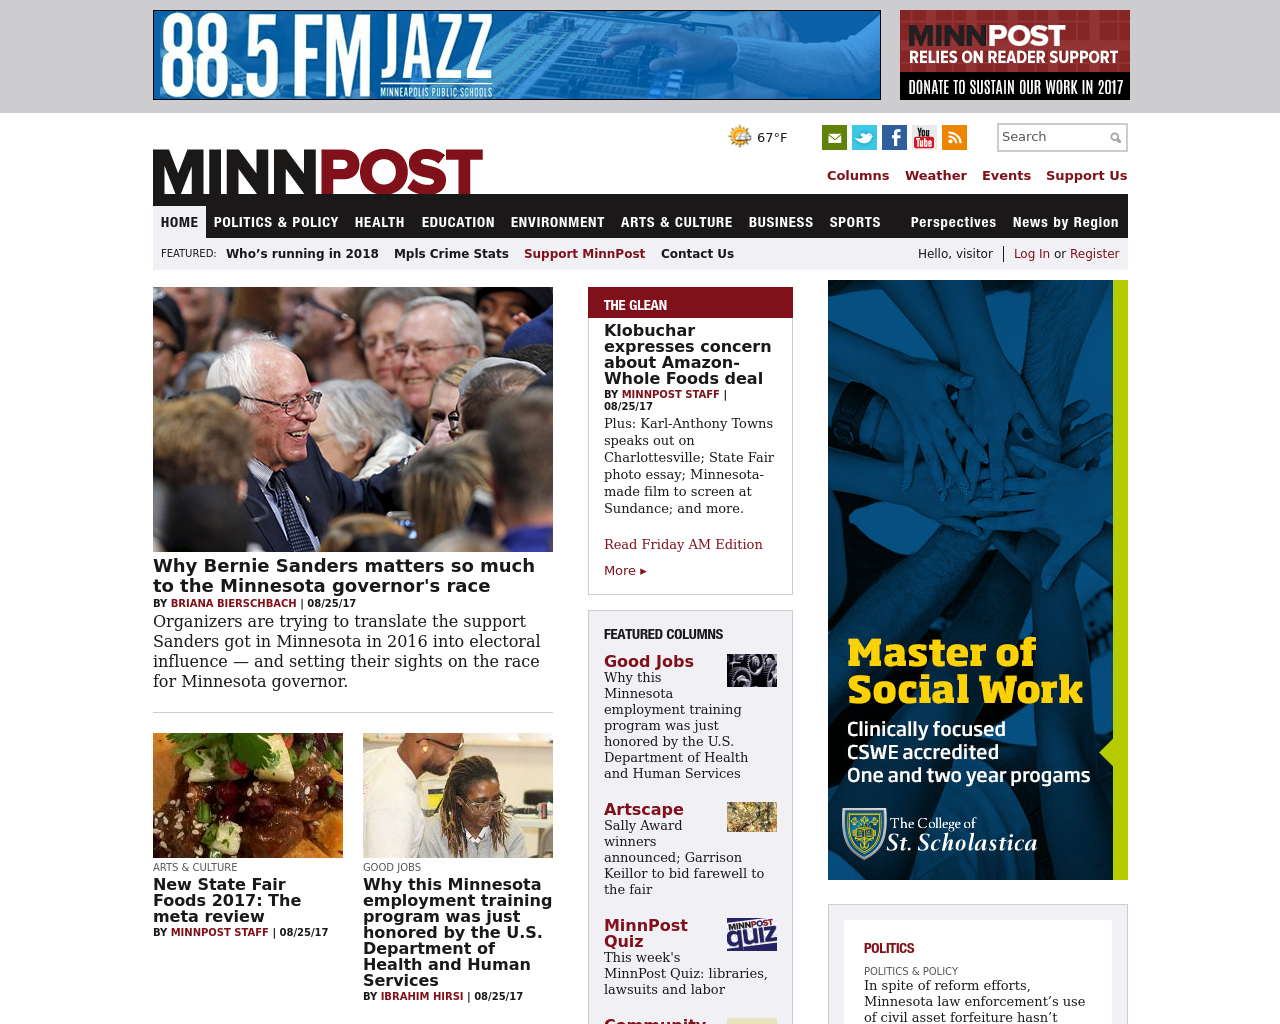 MinnPost-Advertising-Reviews-Pricing